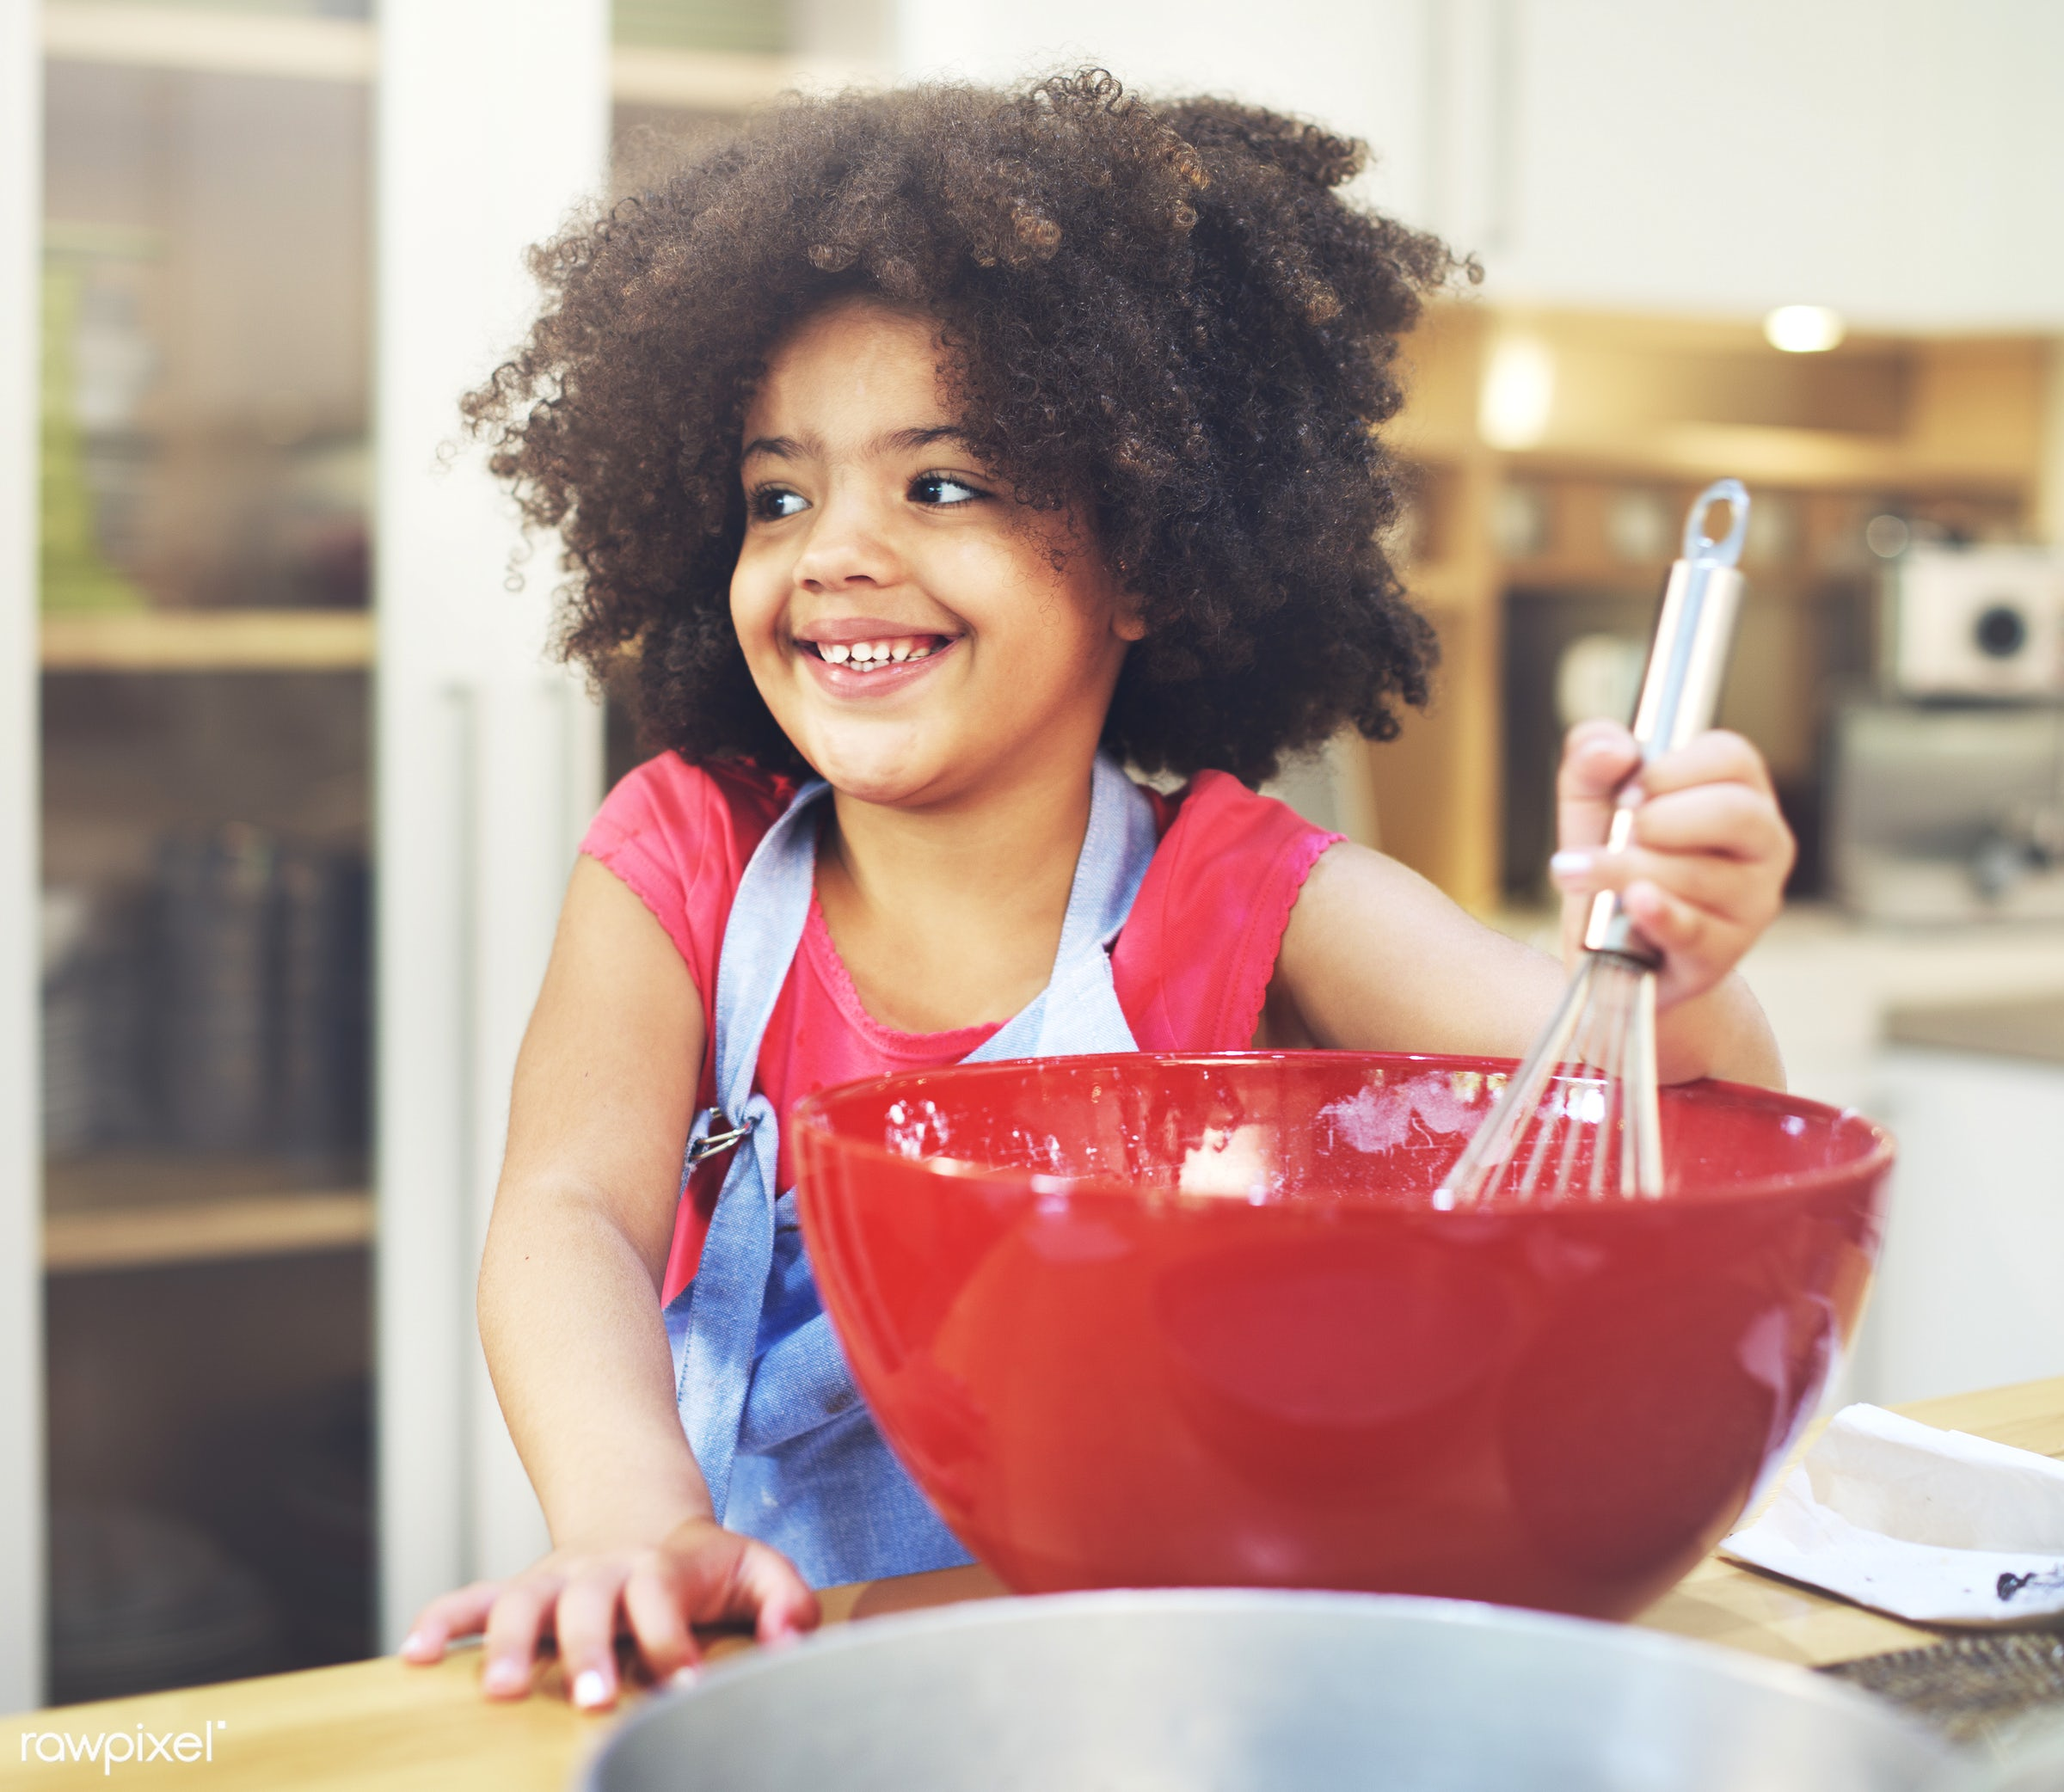 activity, african, african descent, apron, bake, baker, bakery, bowl, cake, casual, cheerful, chef, child, childhood,...